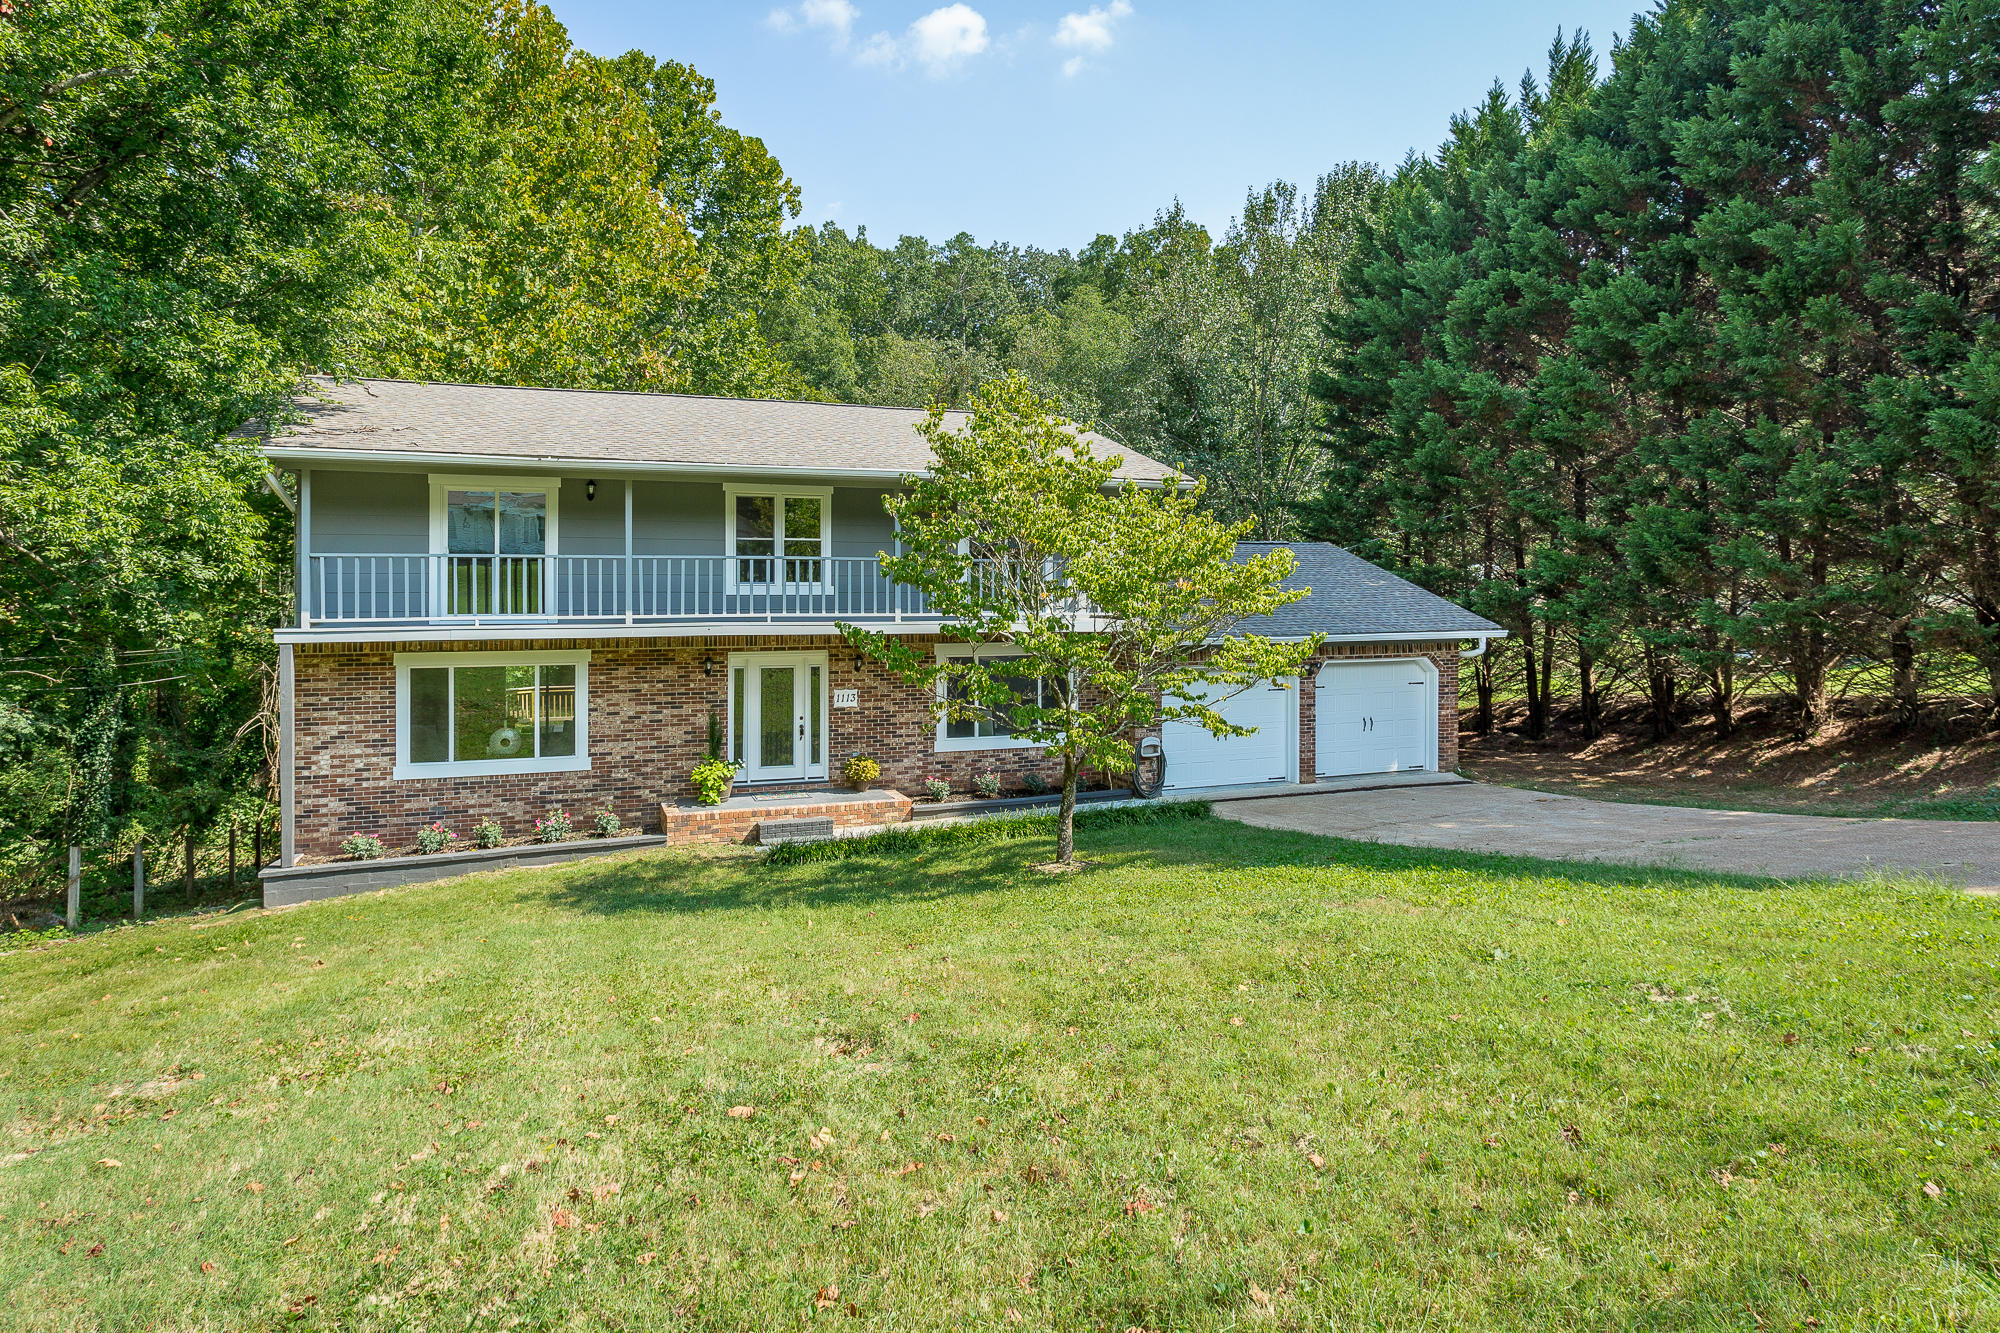 1113 Everett Dr, Chattanooga, Tennessee